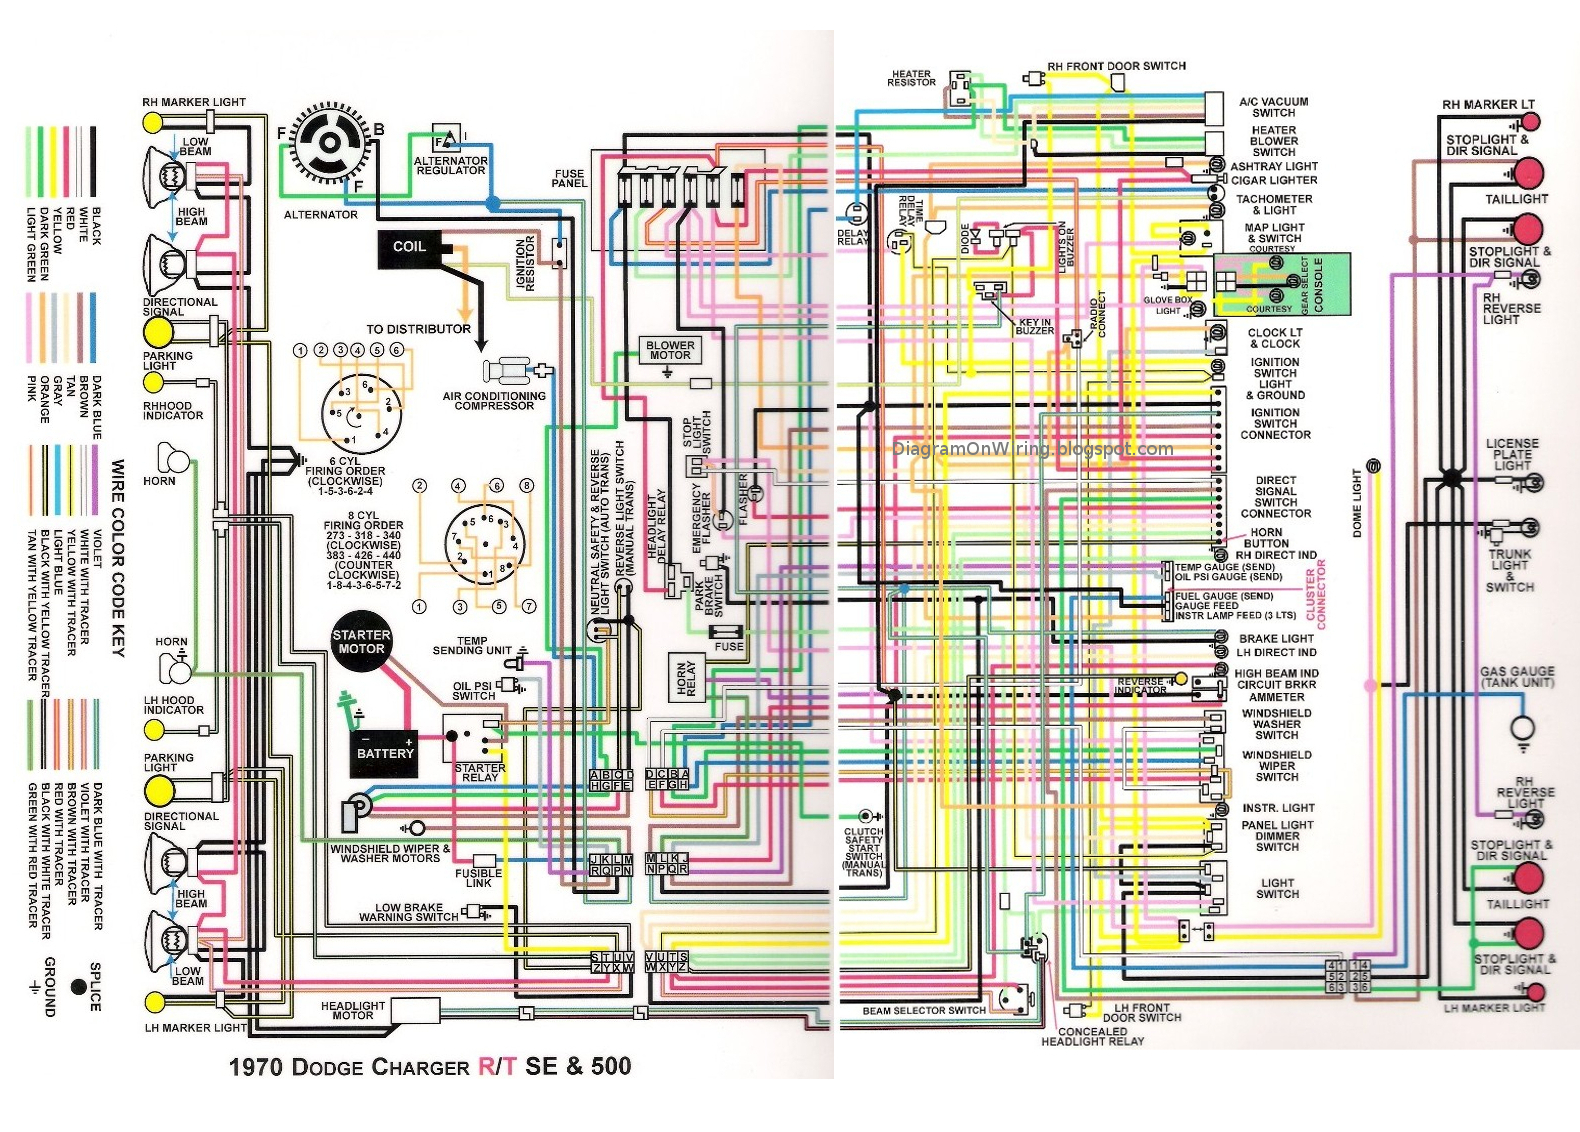 medium resolution of dodge magnum engine diagram wiring library rh 72 csu lichtenhof de 2006 dodge magnum engine 2005 dodge magnum engine hose diagram